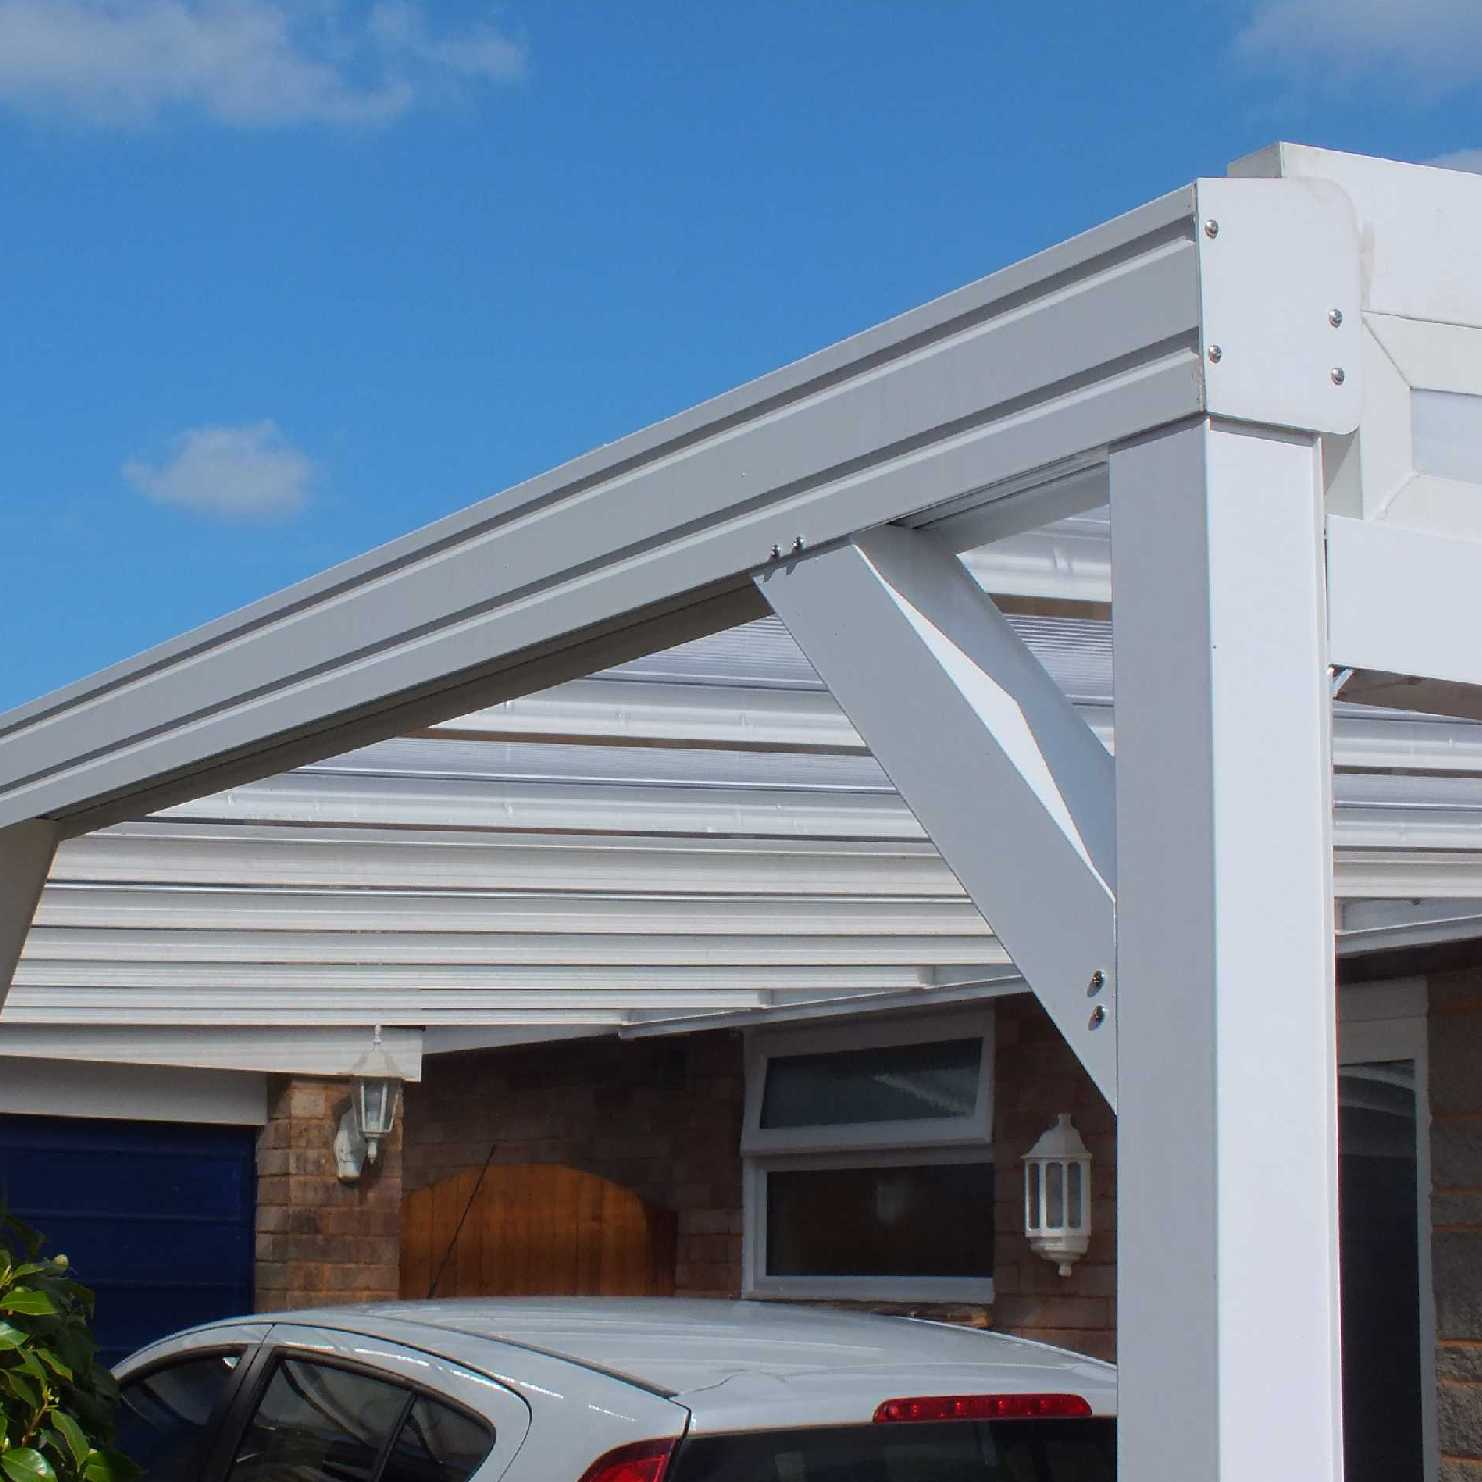 Buy Omega Smart White Lean-To Canopy with 16mm Polycarbonate Glazing - 8.4m (W) x 3.5m (P), (4) Supporting Posts online today